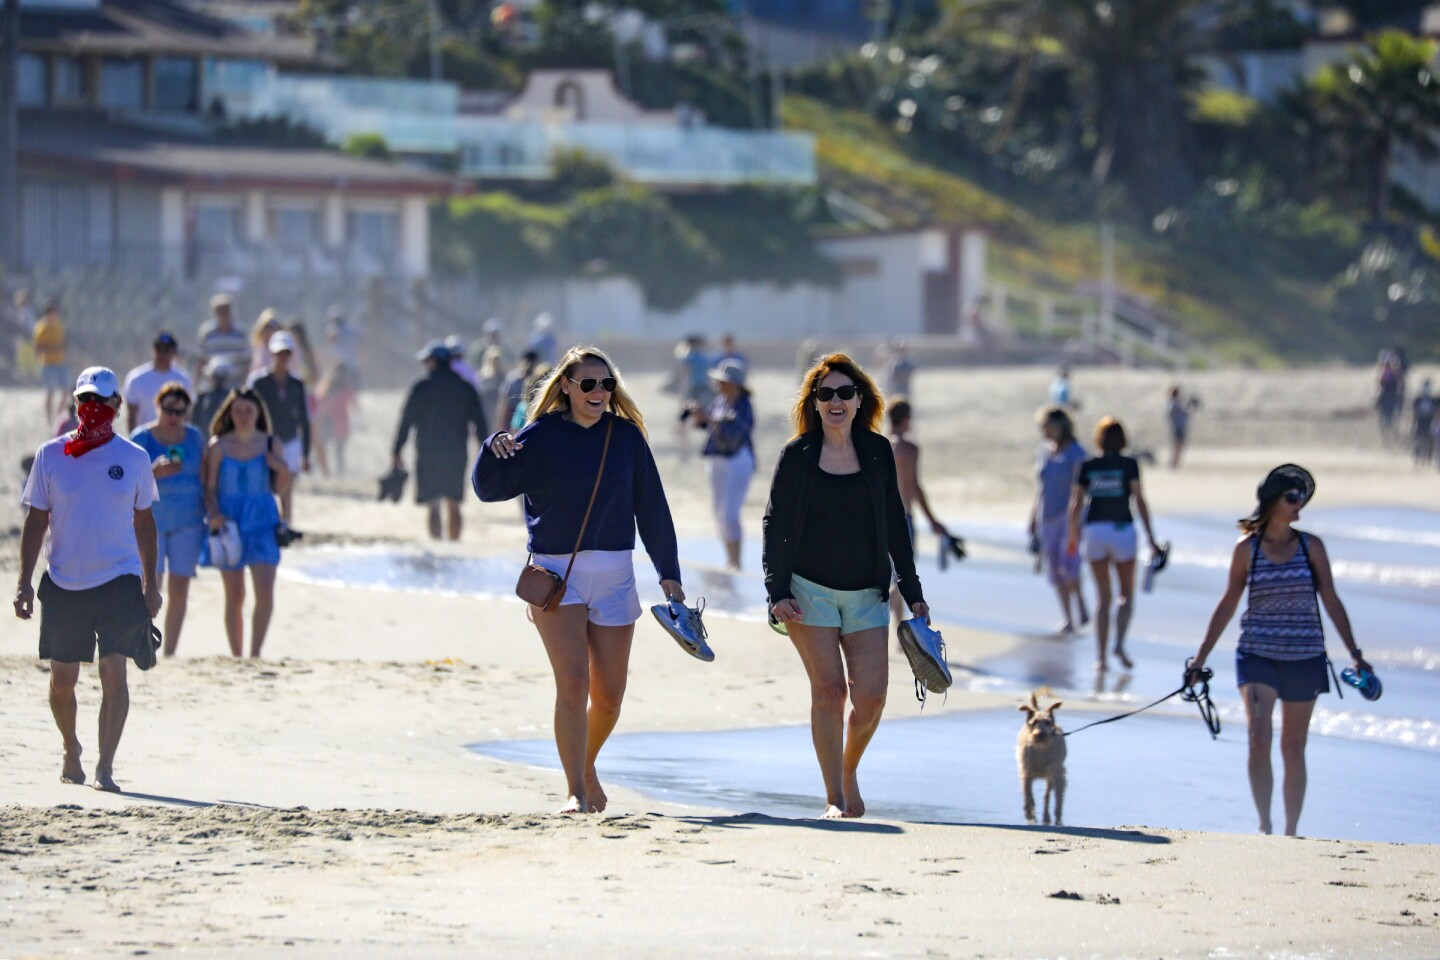 LAGUNA BEACH, CA - MAY 05: People stroll along Laguna Beach on Tuesday morning as city with State's blessings reopened its beaches for active use only. The first phase of the reopening includes 6-10 a.m. hours Mondays through Fridays. in Laguna Beach on Tuesday, May 5, 2020 in Laguna Beach, CA. (Irfan Khan / Los Angeles Times)